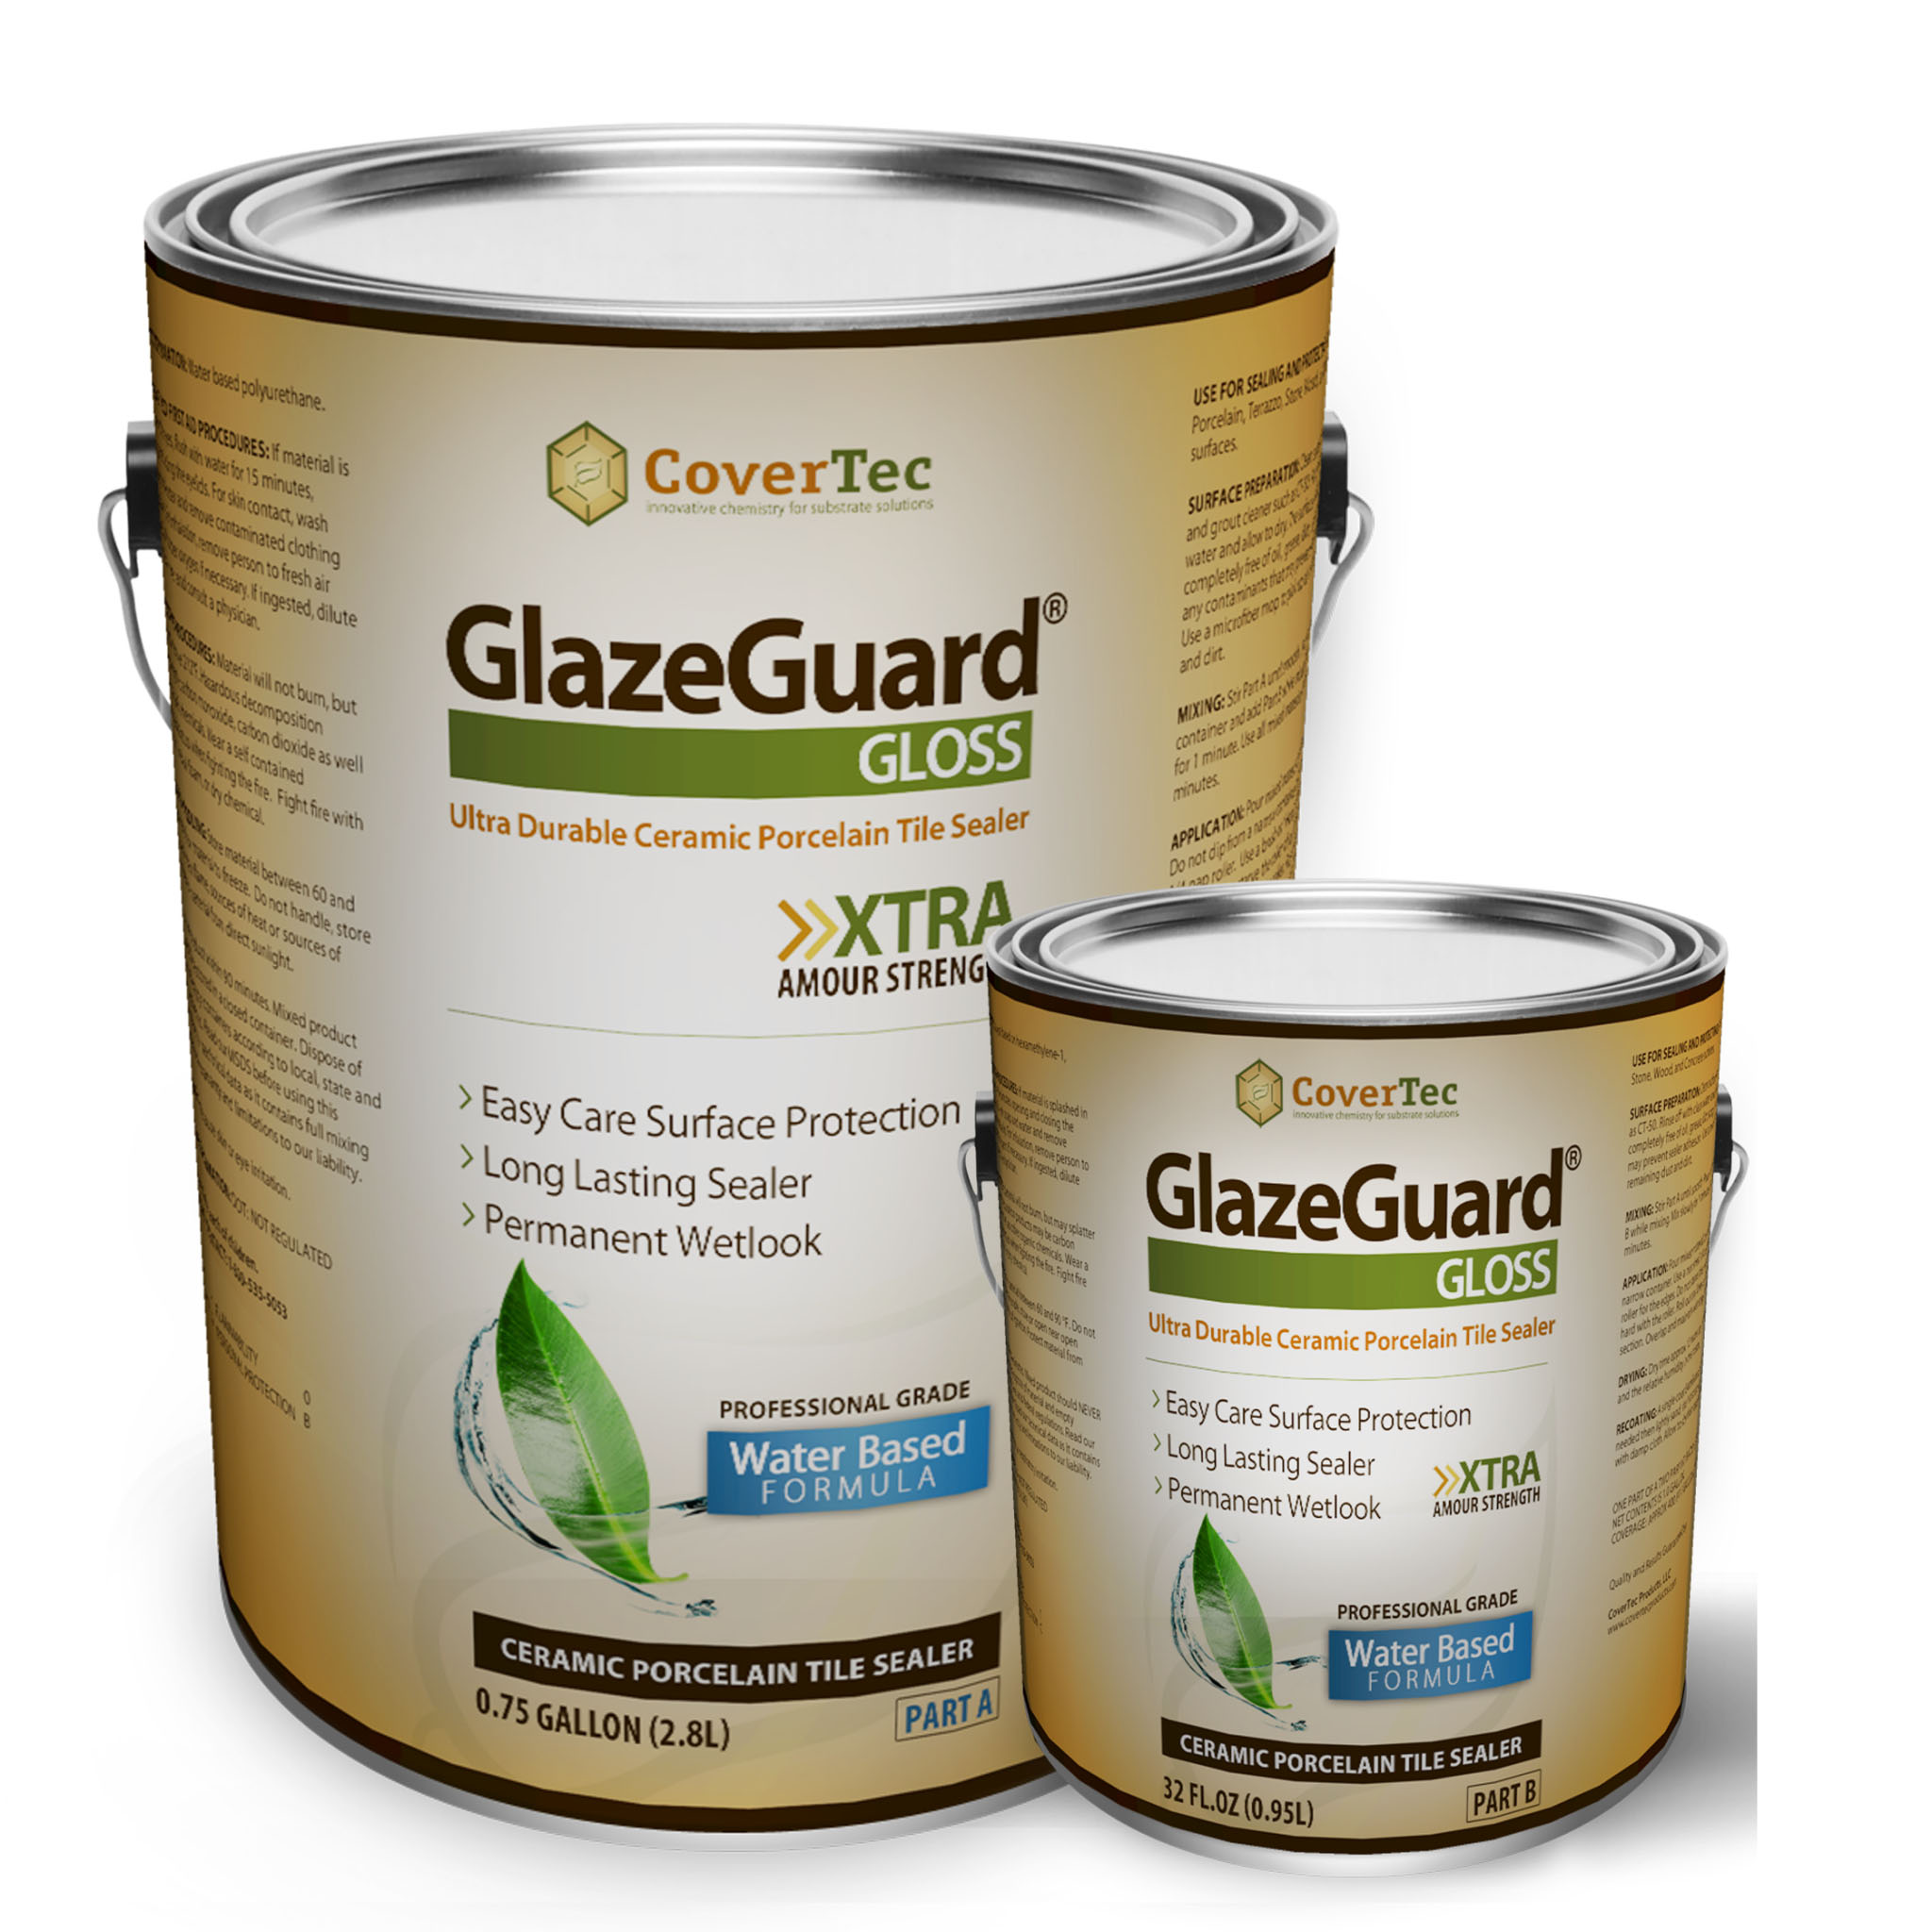 Glazeguard gloss ceramic porcelain tile sealer hgloss glazeguard gloss ceramic porcelain tile sealer hgloss covertec products doublecrazyfo Gallery